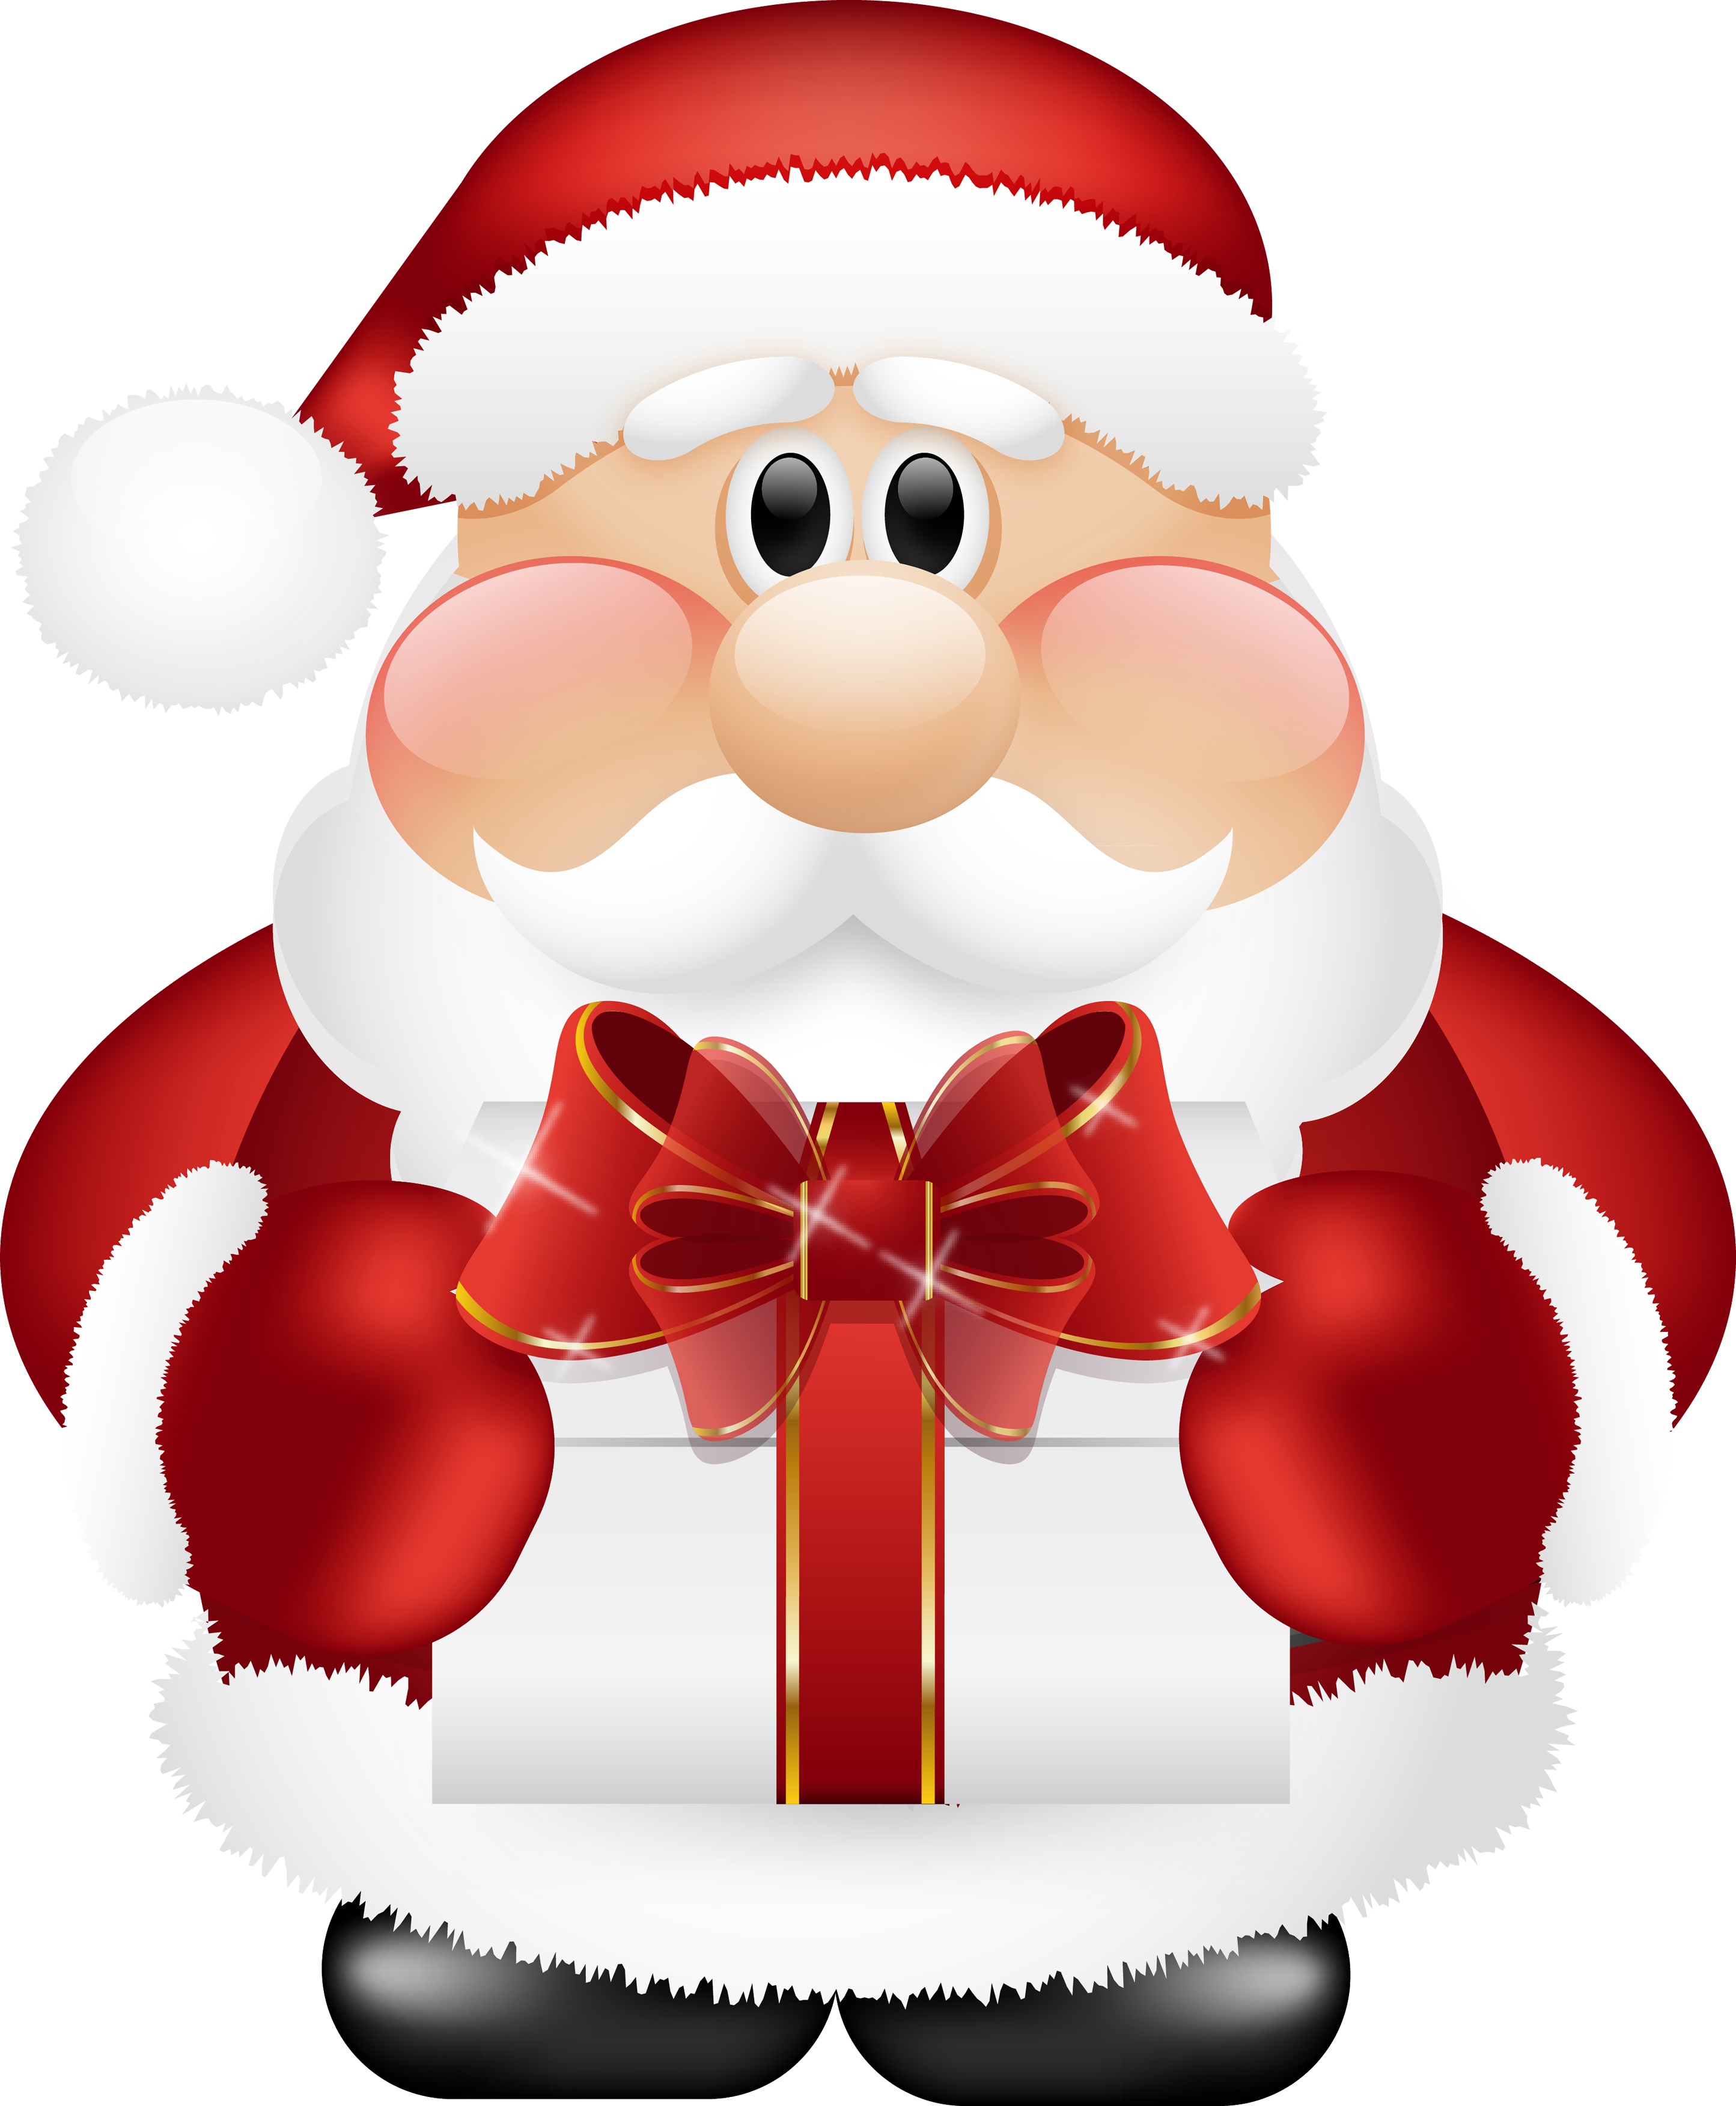 Claus png images free. Sunglasses clipart santa